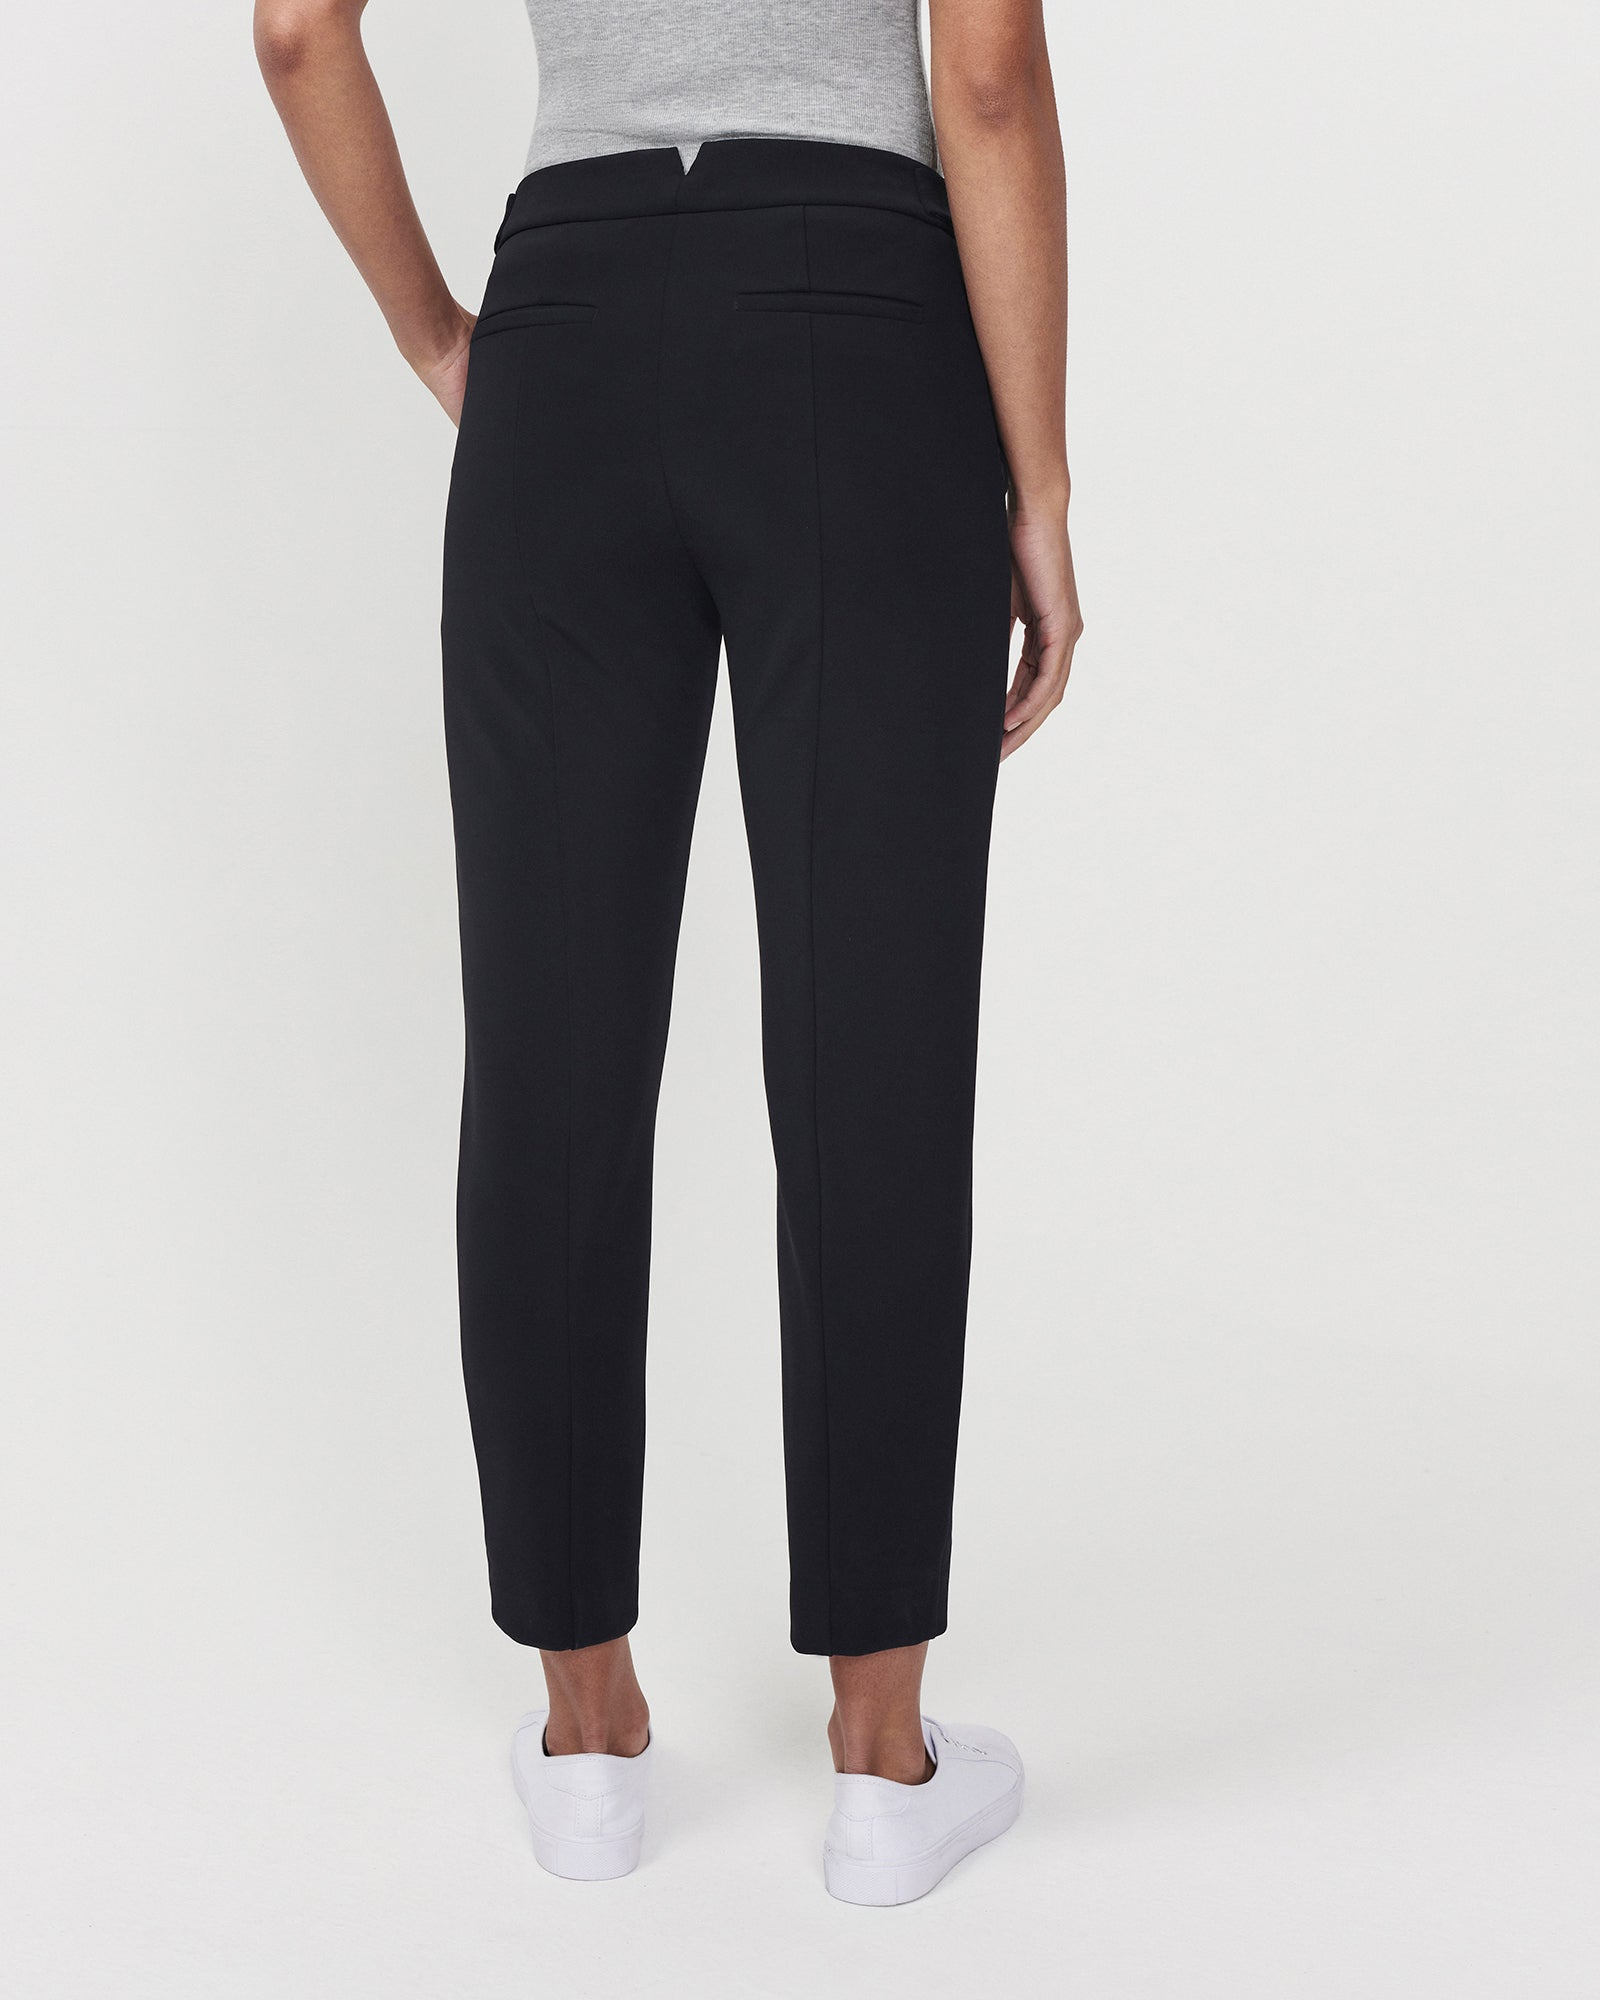 Pegged For Success Trouser Black